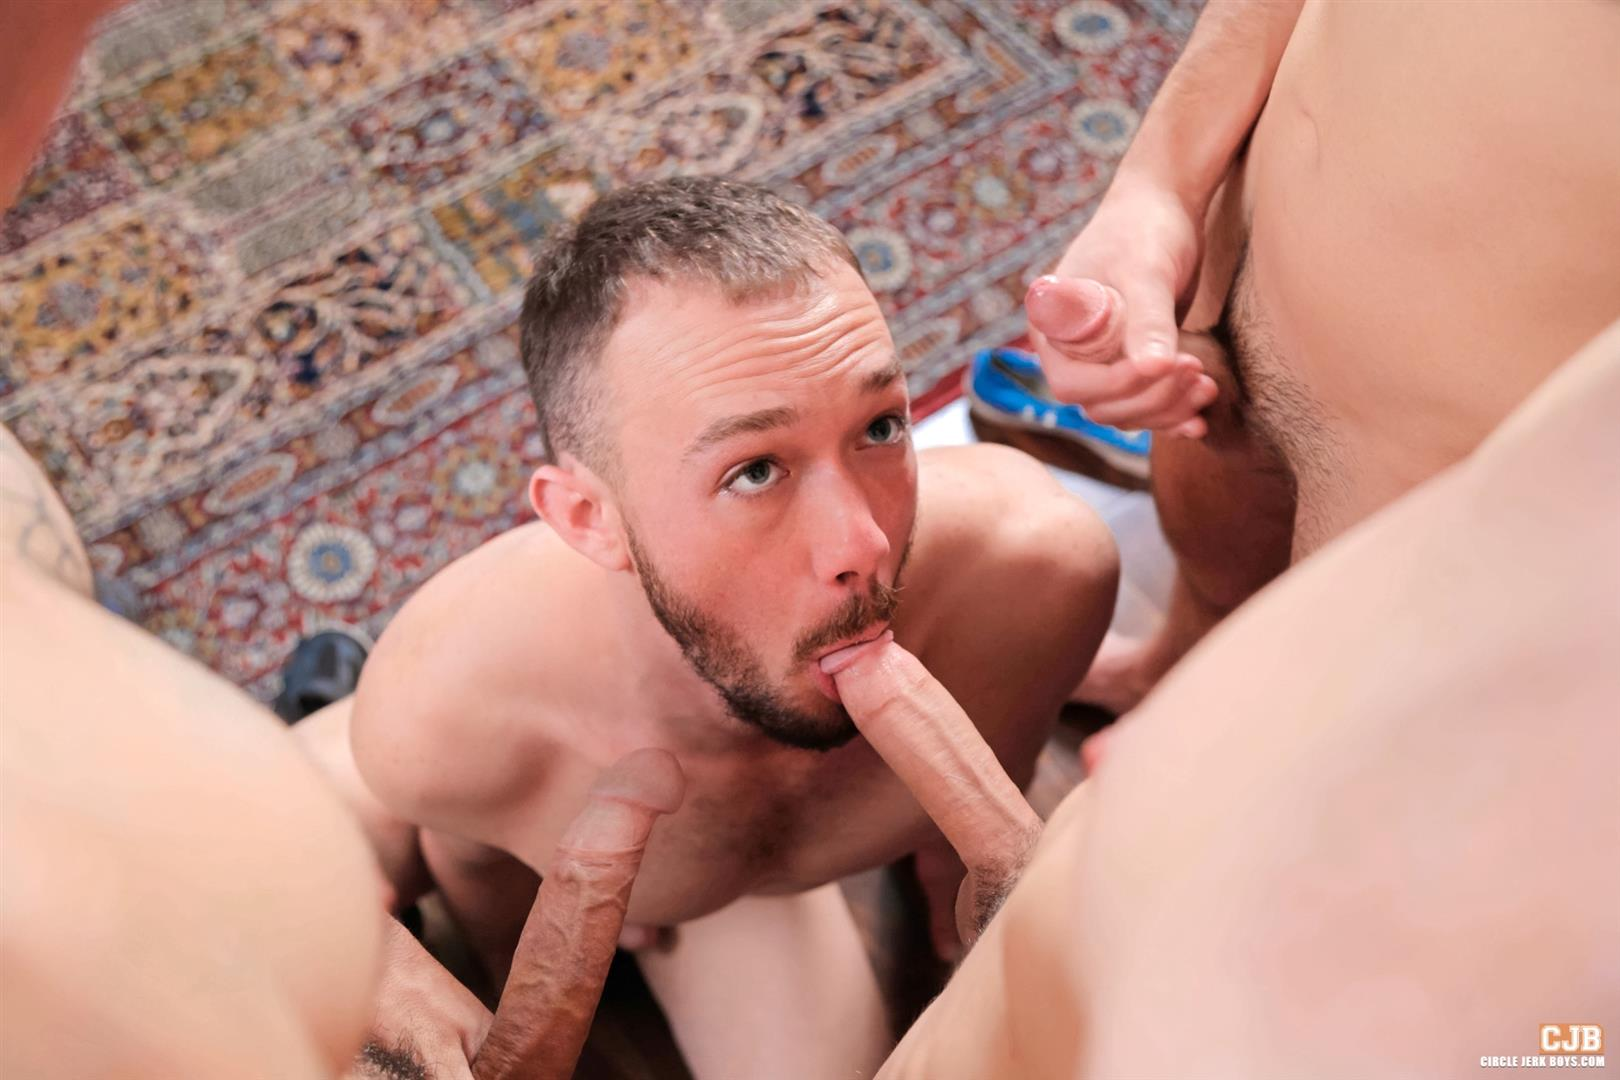 Circle-Jerk-Boys-Kirk-Cummings-and-Trent-Jackson-and-Jake-Jammer-and-Blake-Stone-Cock-Sucking-Young-Guys-Amateur-Gay-Porn-13 4 Hard Cocks, 4 Young Men, 4 Cock Suckers, 4 Loads Of Cum